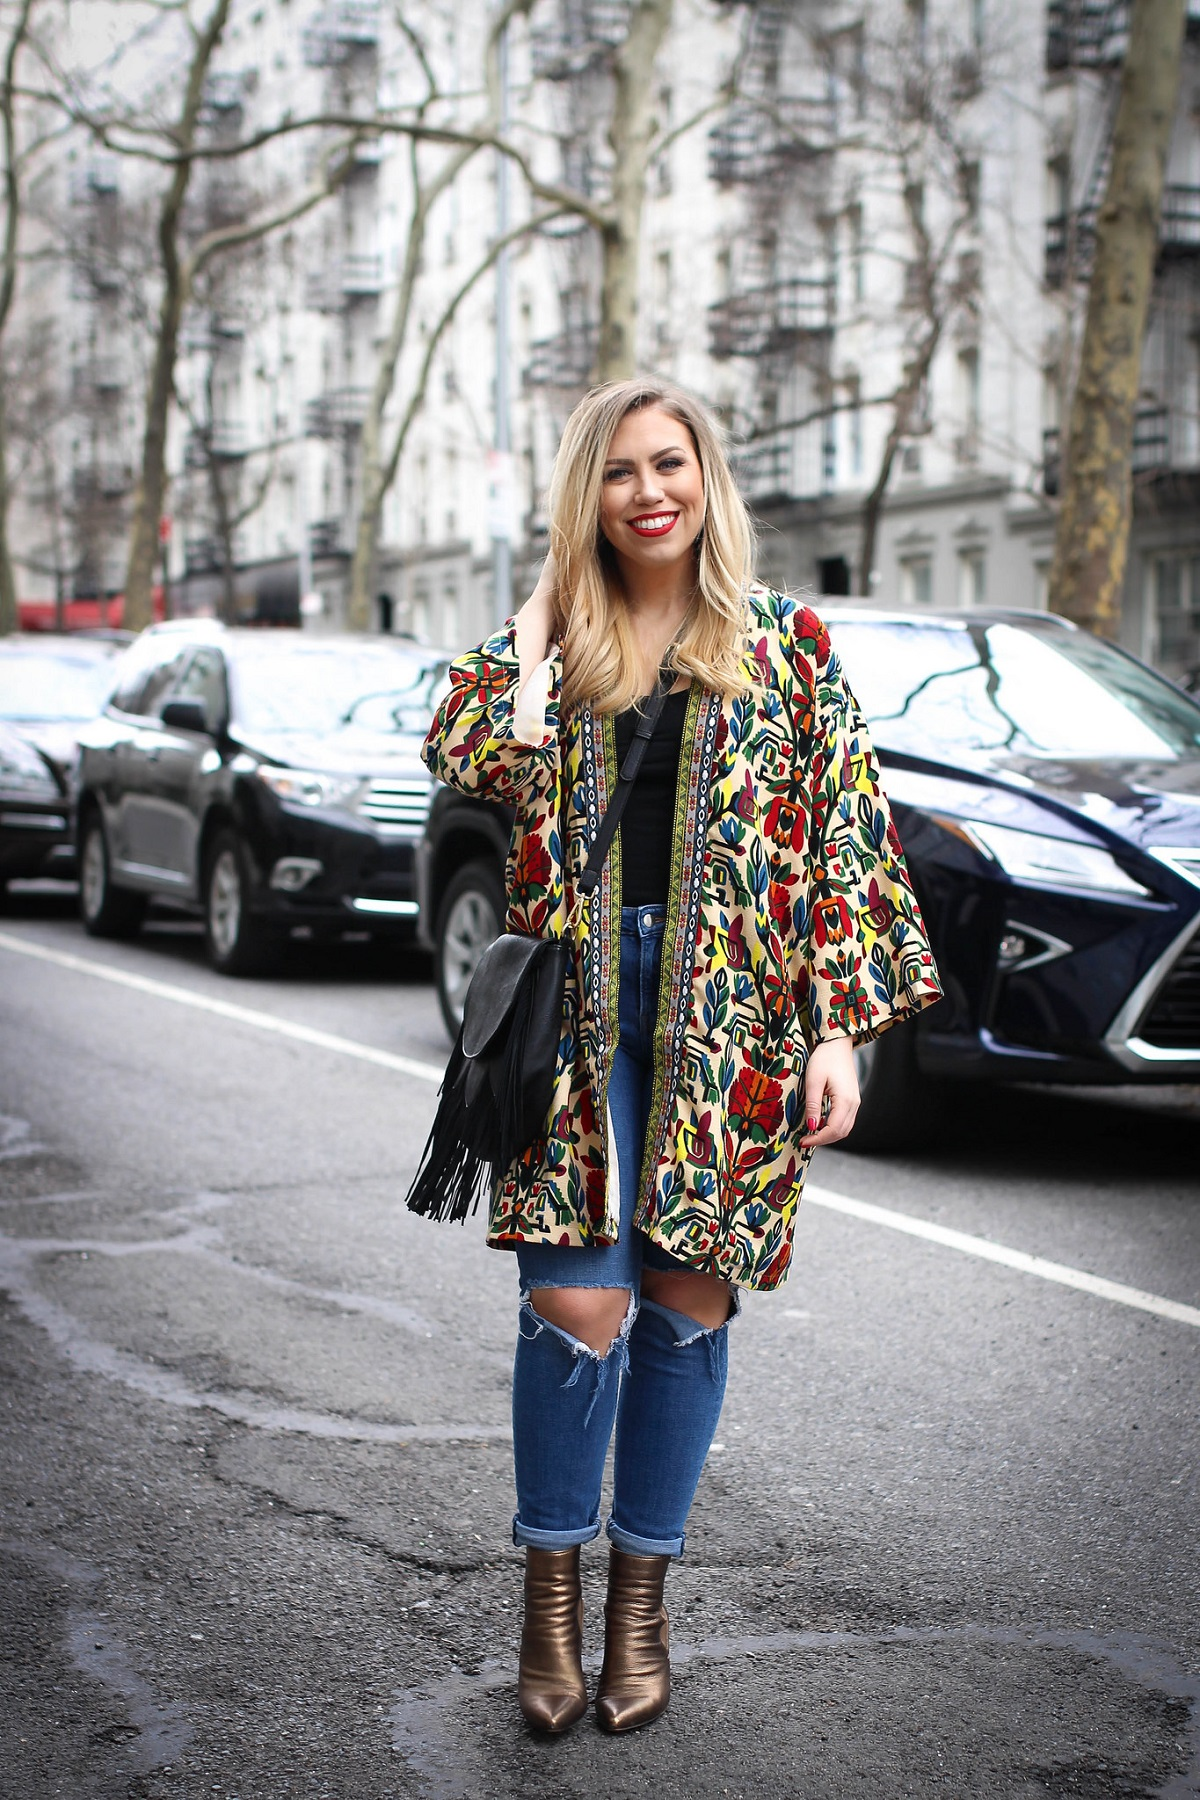 Affordable Fashion: 10 Inexpensive Spring Statement Pieces